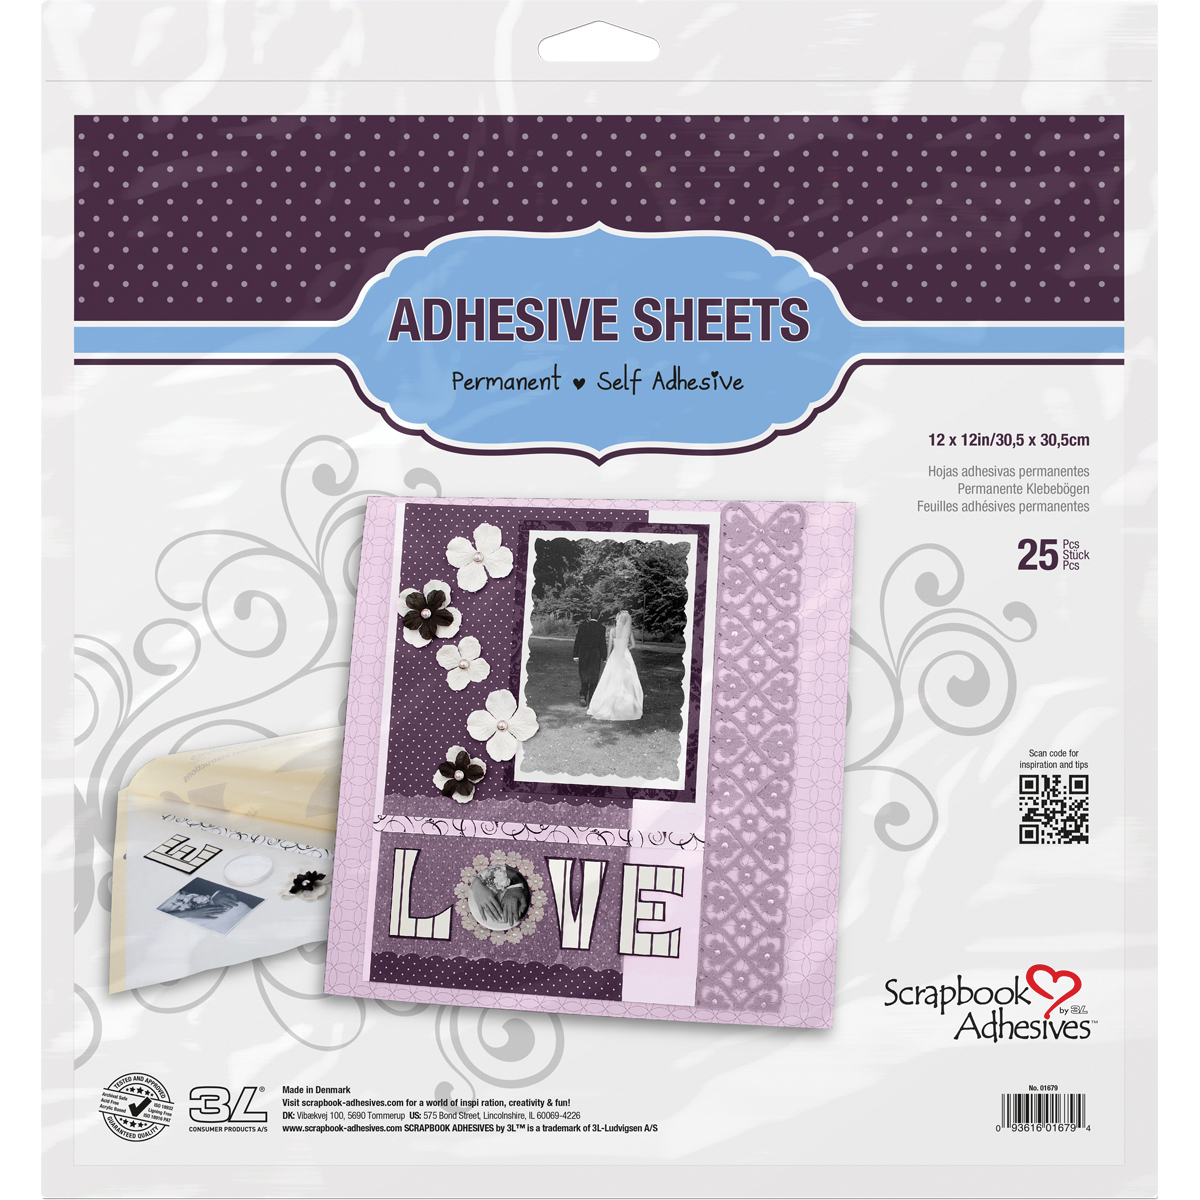 Scrapbook Adhesives by 3L Adhesives Sheets 12x12in